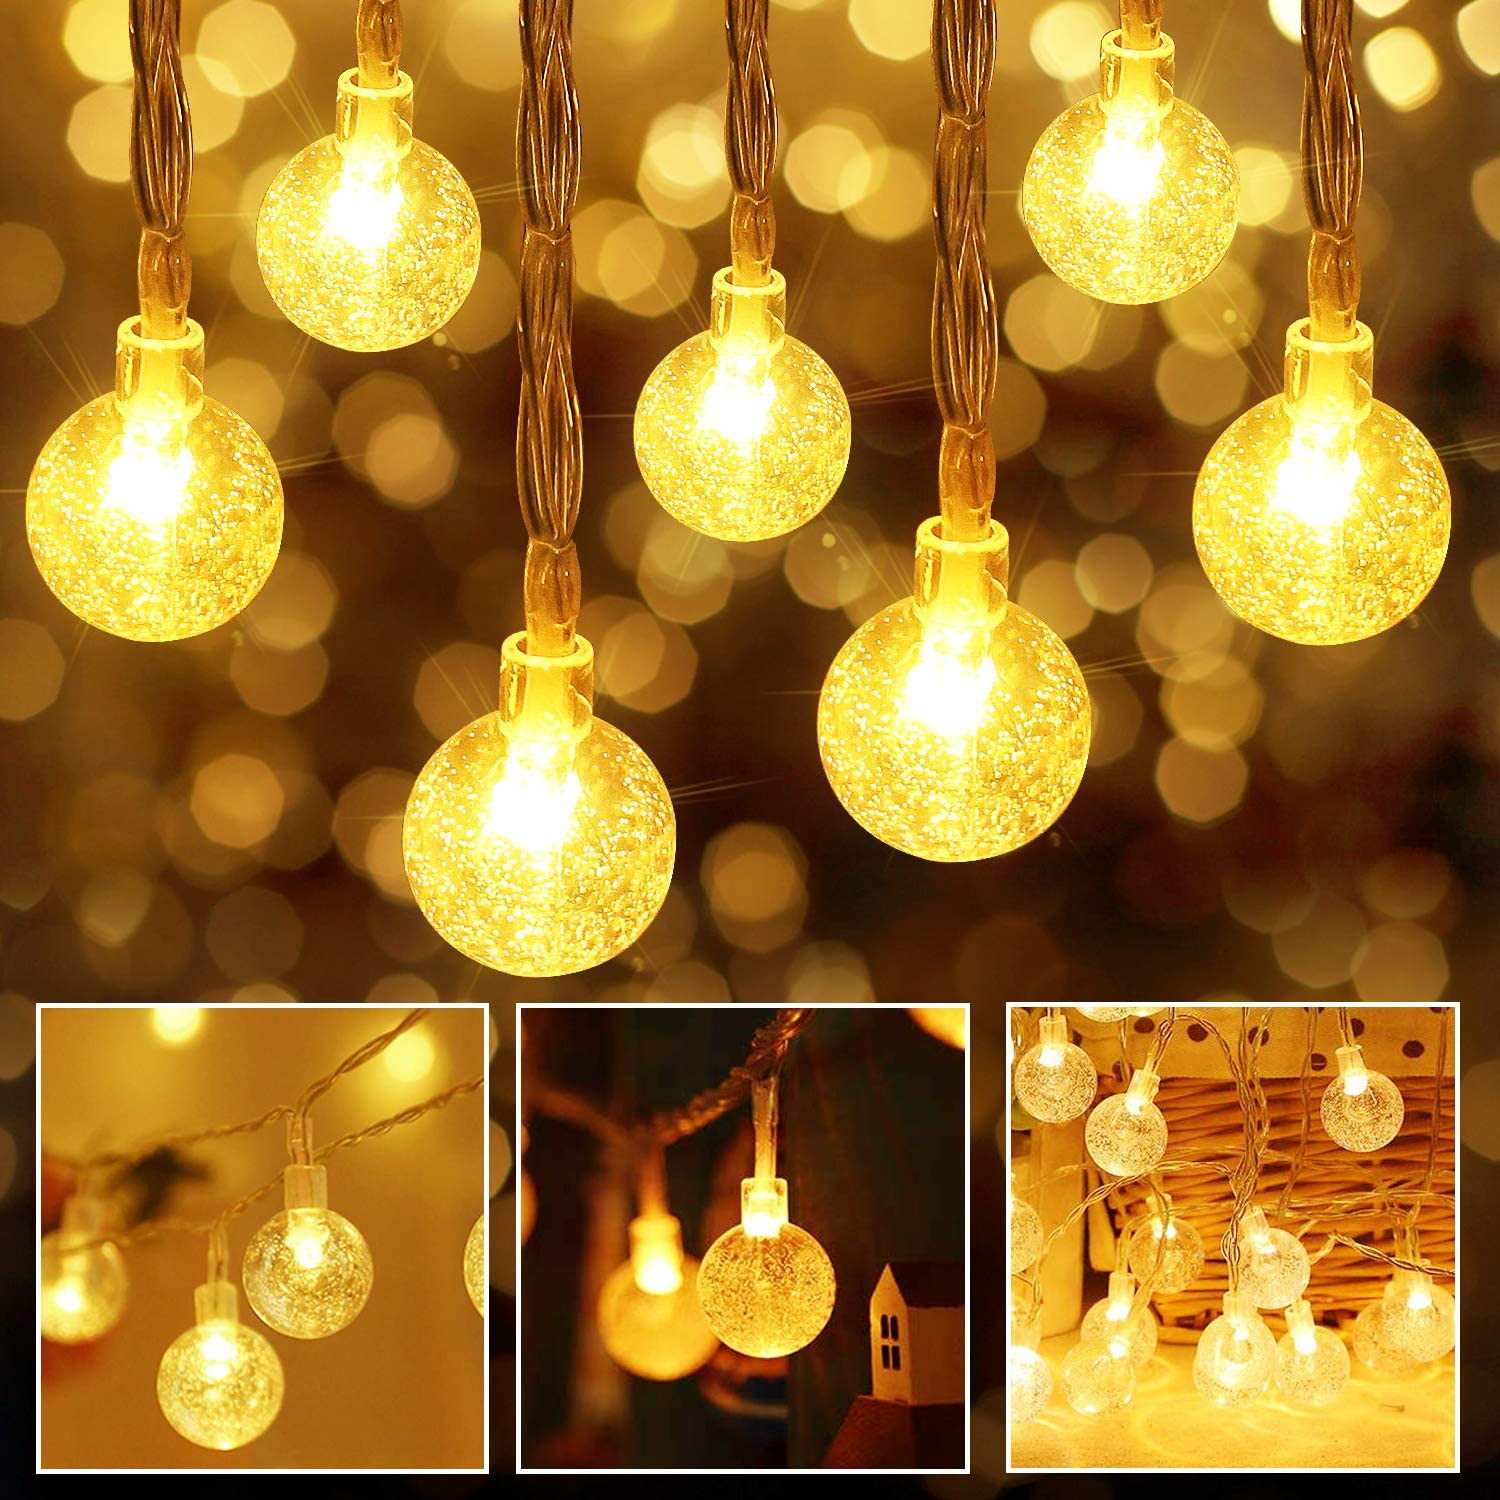 Aluan Battery Operated String Lights 60LED 30ft USB Powered Crystal Globe Christmas Lights 8 Modes Fairy Lights for Home, Bedroom, Wall, Wedding, Party, Indoor,Outdoor,Warm White